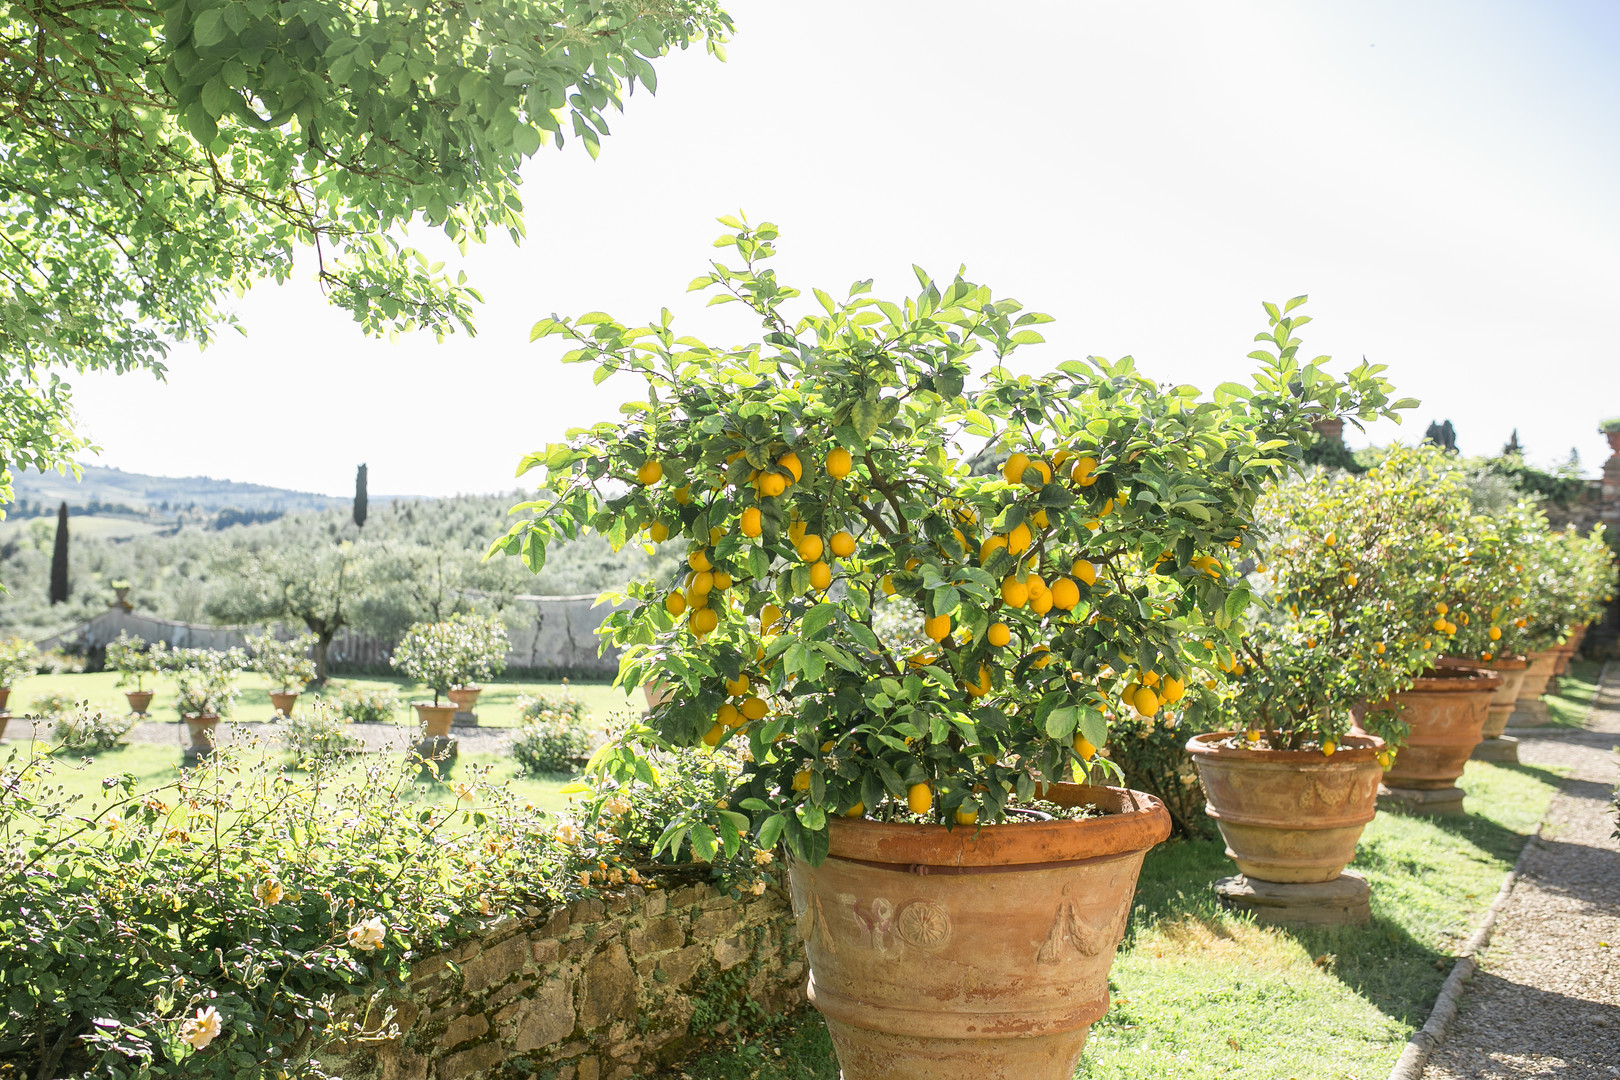 Italian lemon trees